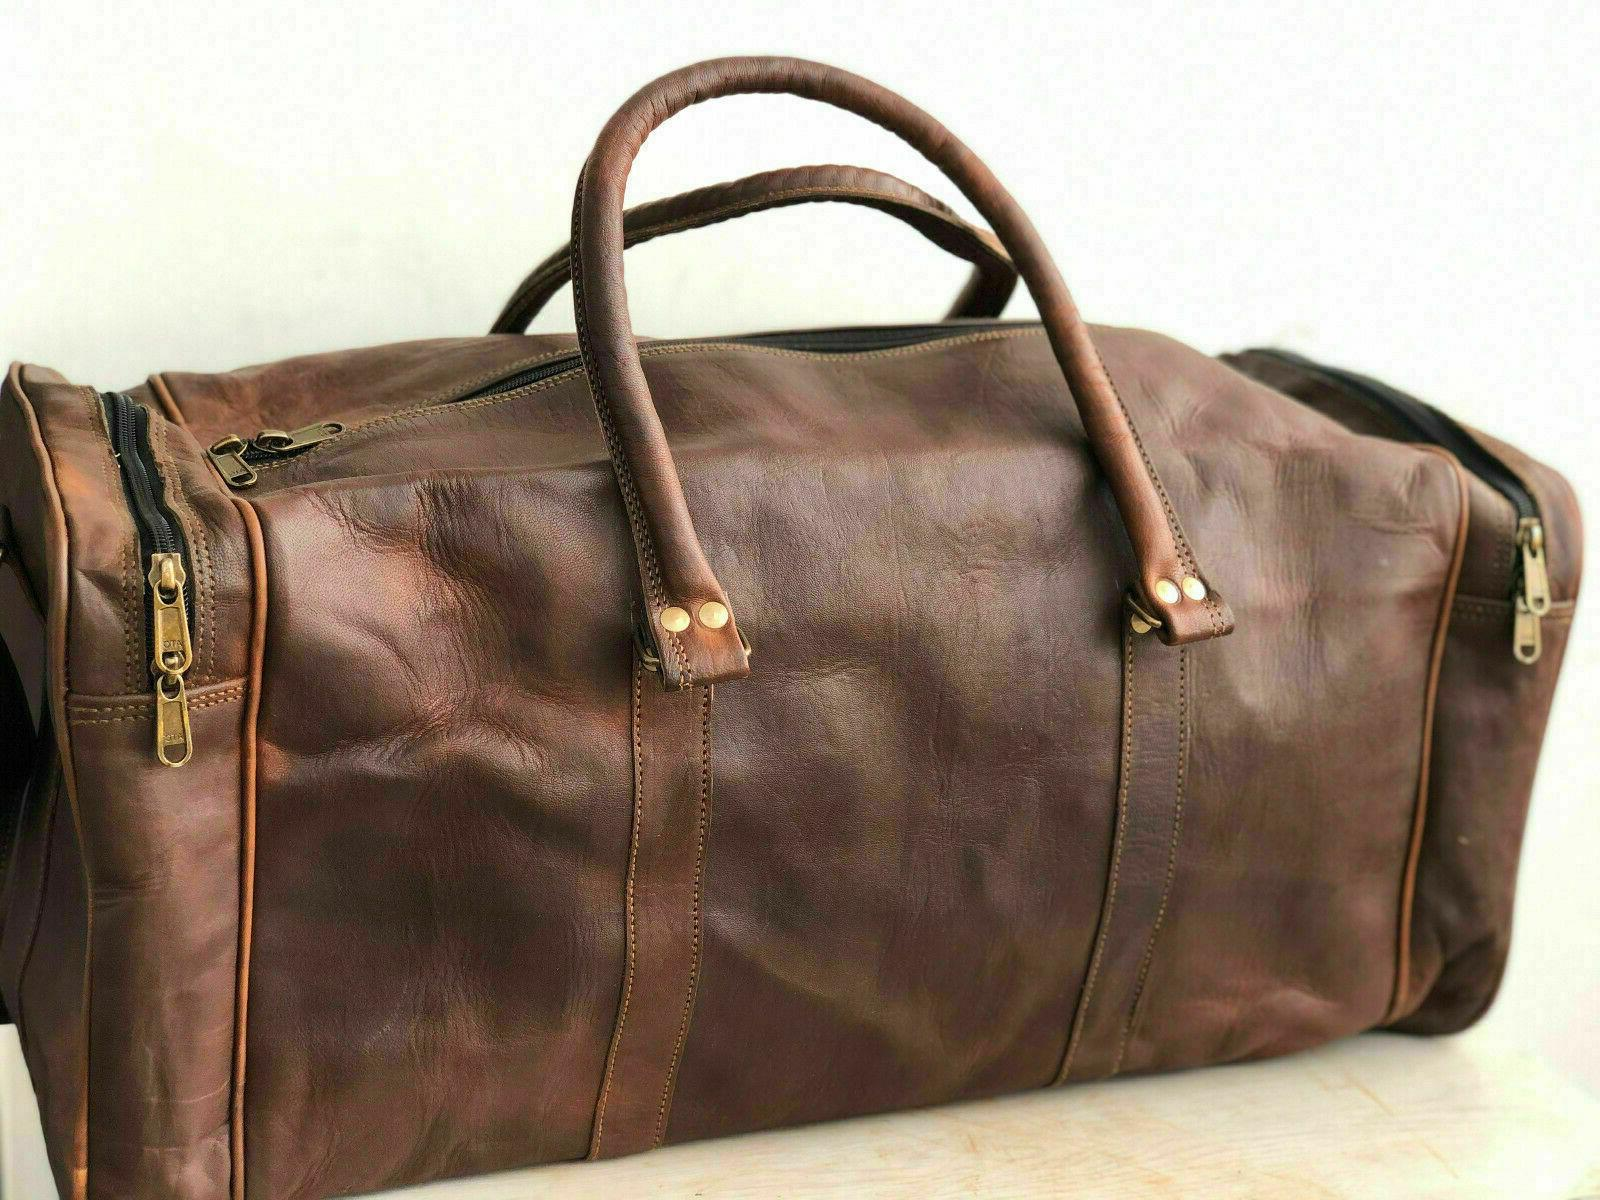 Holdall Weekend Travel Real cabin New Luggage